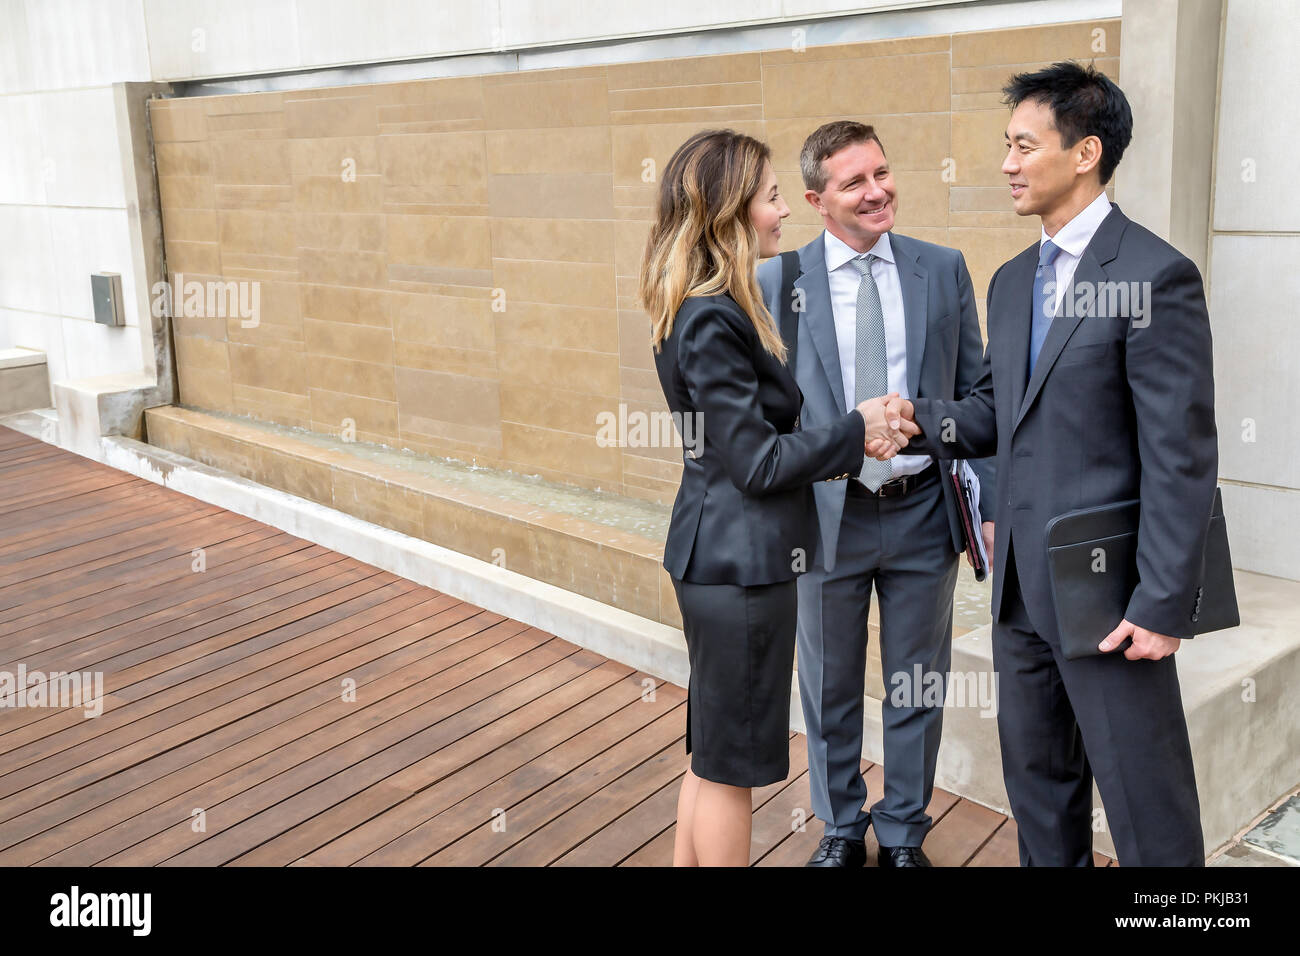 A group of executives shaking hands in their office building - Stock Image